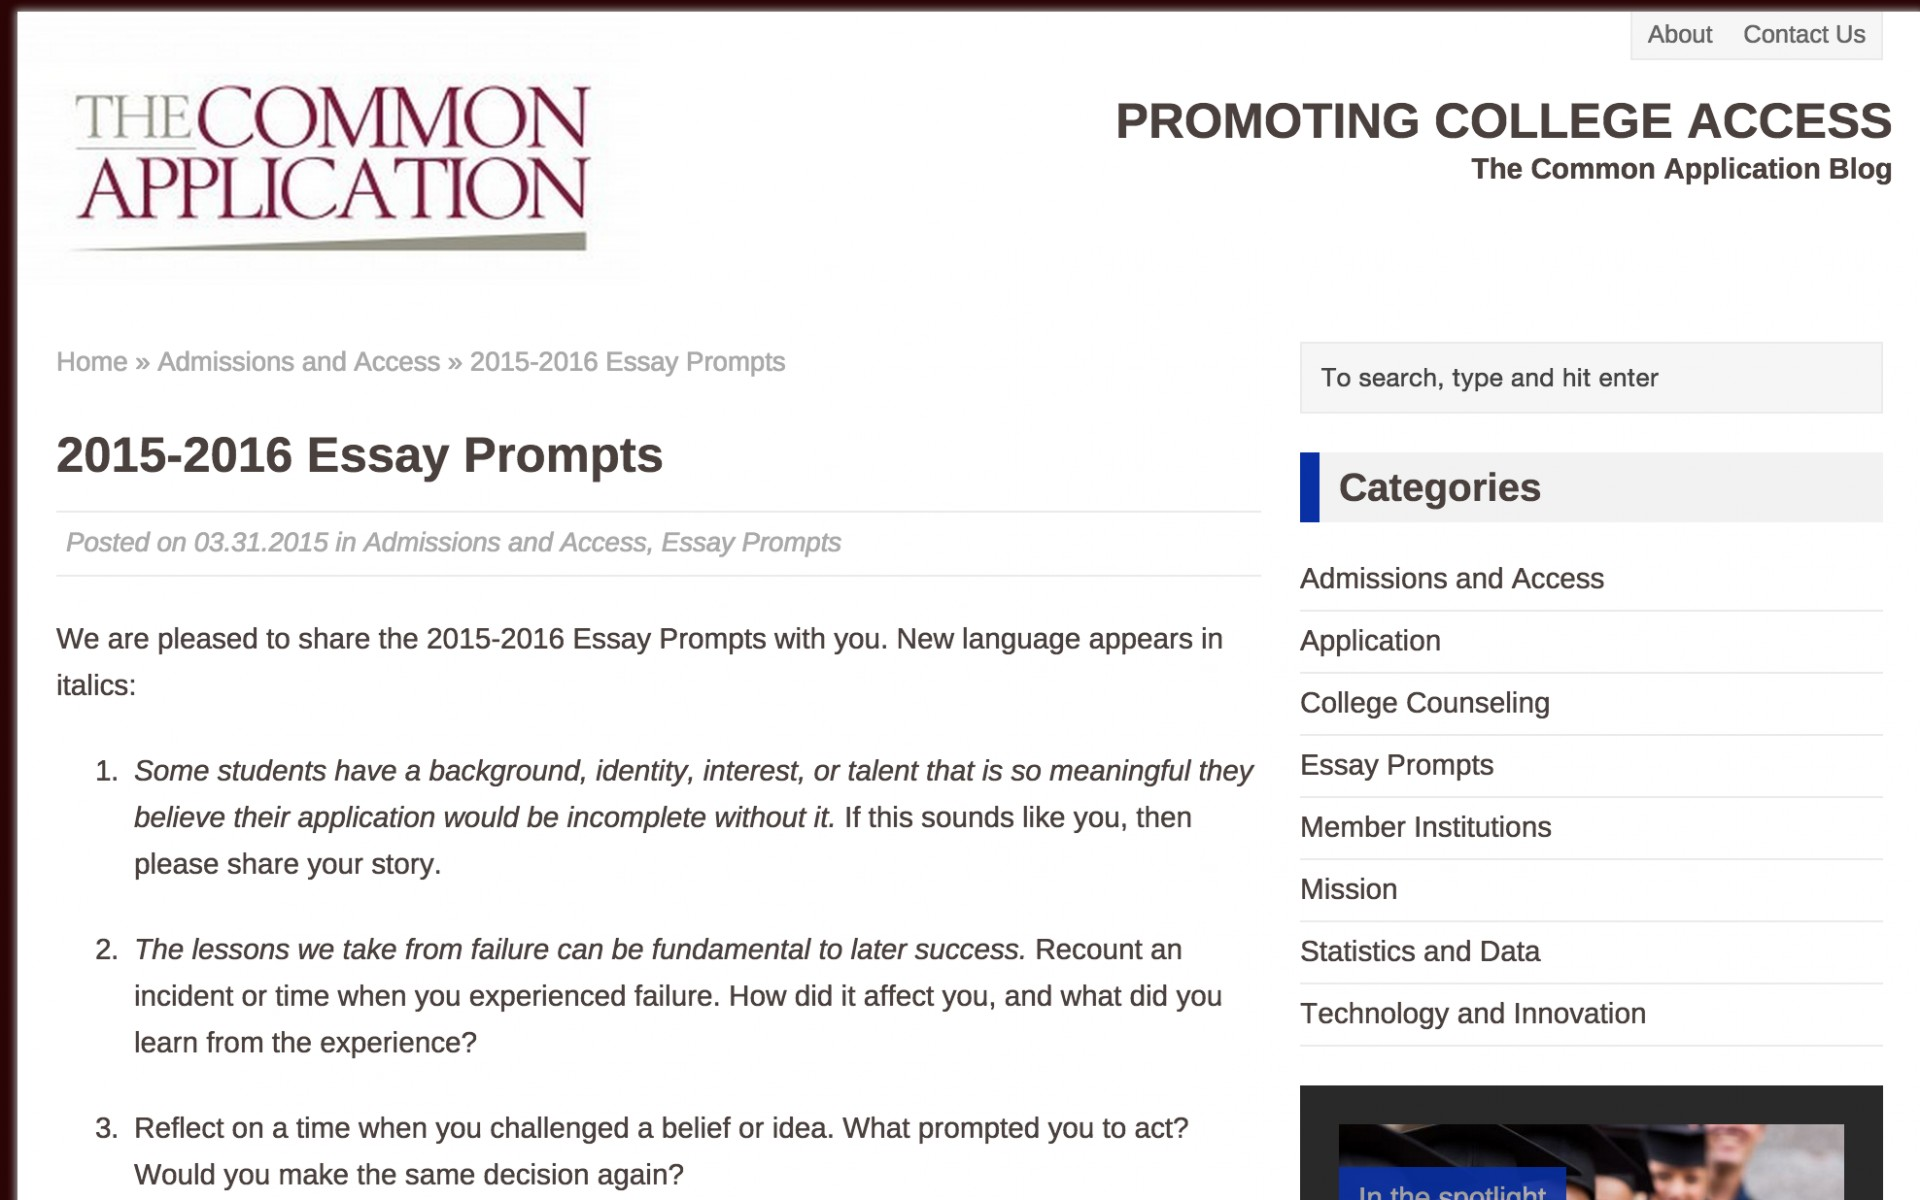 009 Common App Essays Prompts And Commentary All College Admission Essay Topics Screen Shot Format Applications Uchicago Fantastic 2017 2016 Word Limit 1920